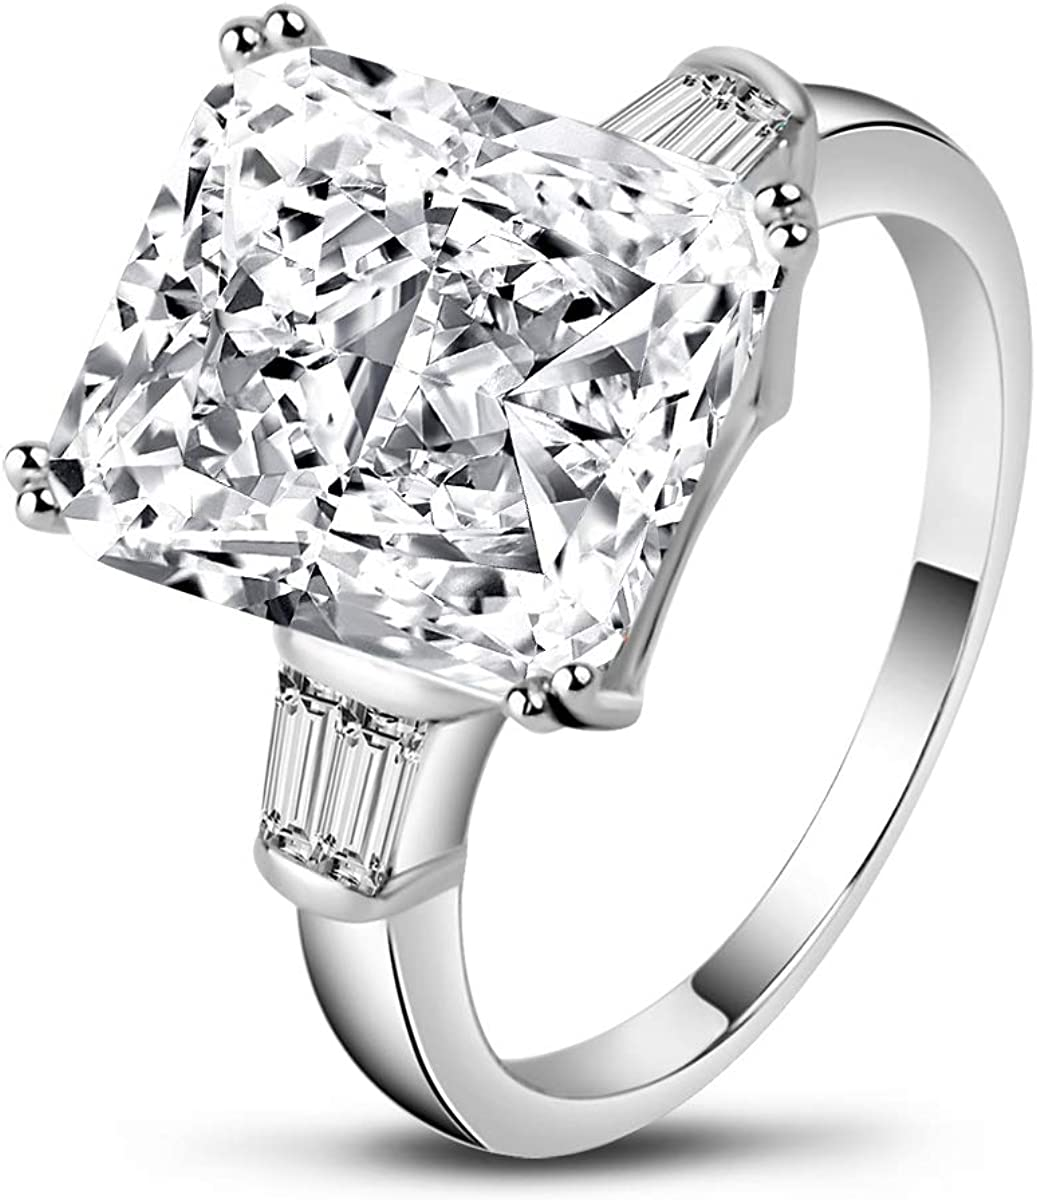 Brilliant Embers 925 Sterling Silver Rhodium-plated Square CZ Bridal Engagement Ring Size 6